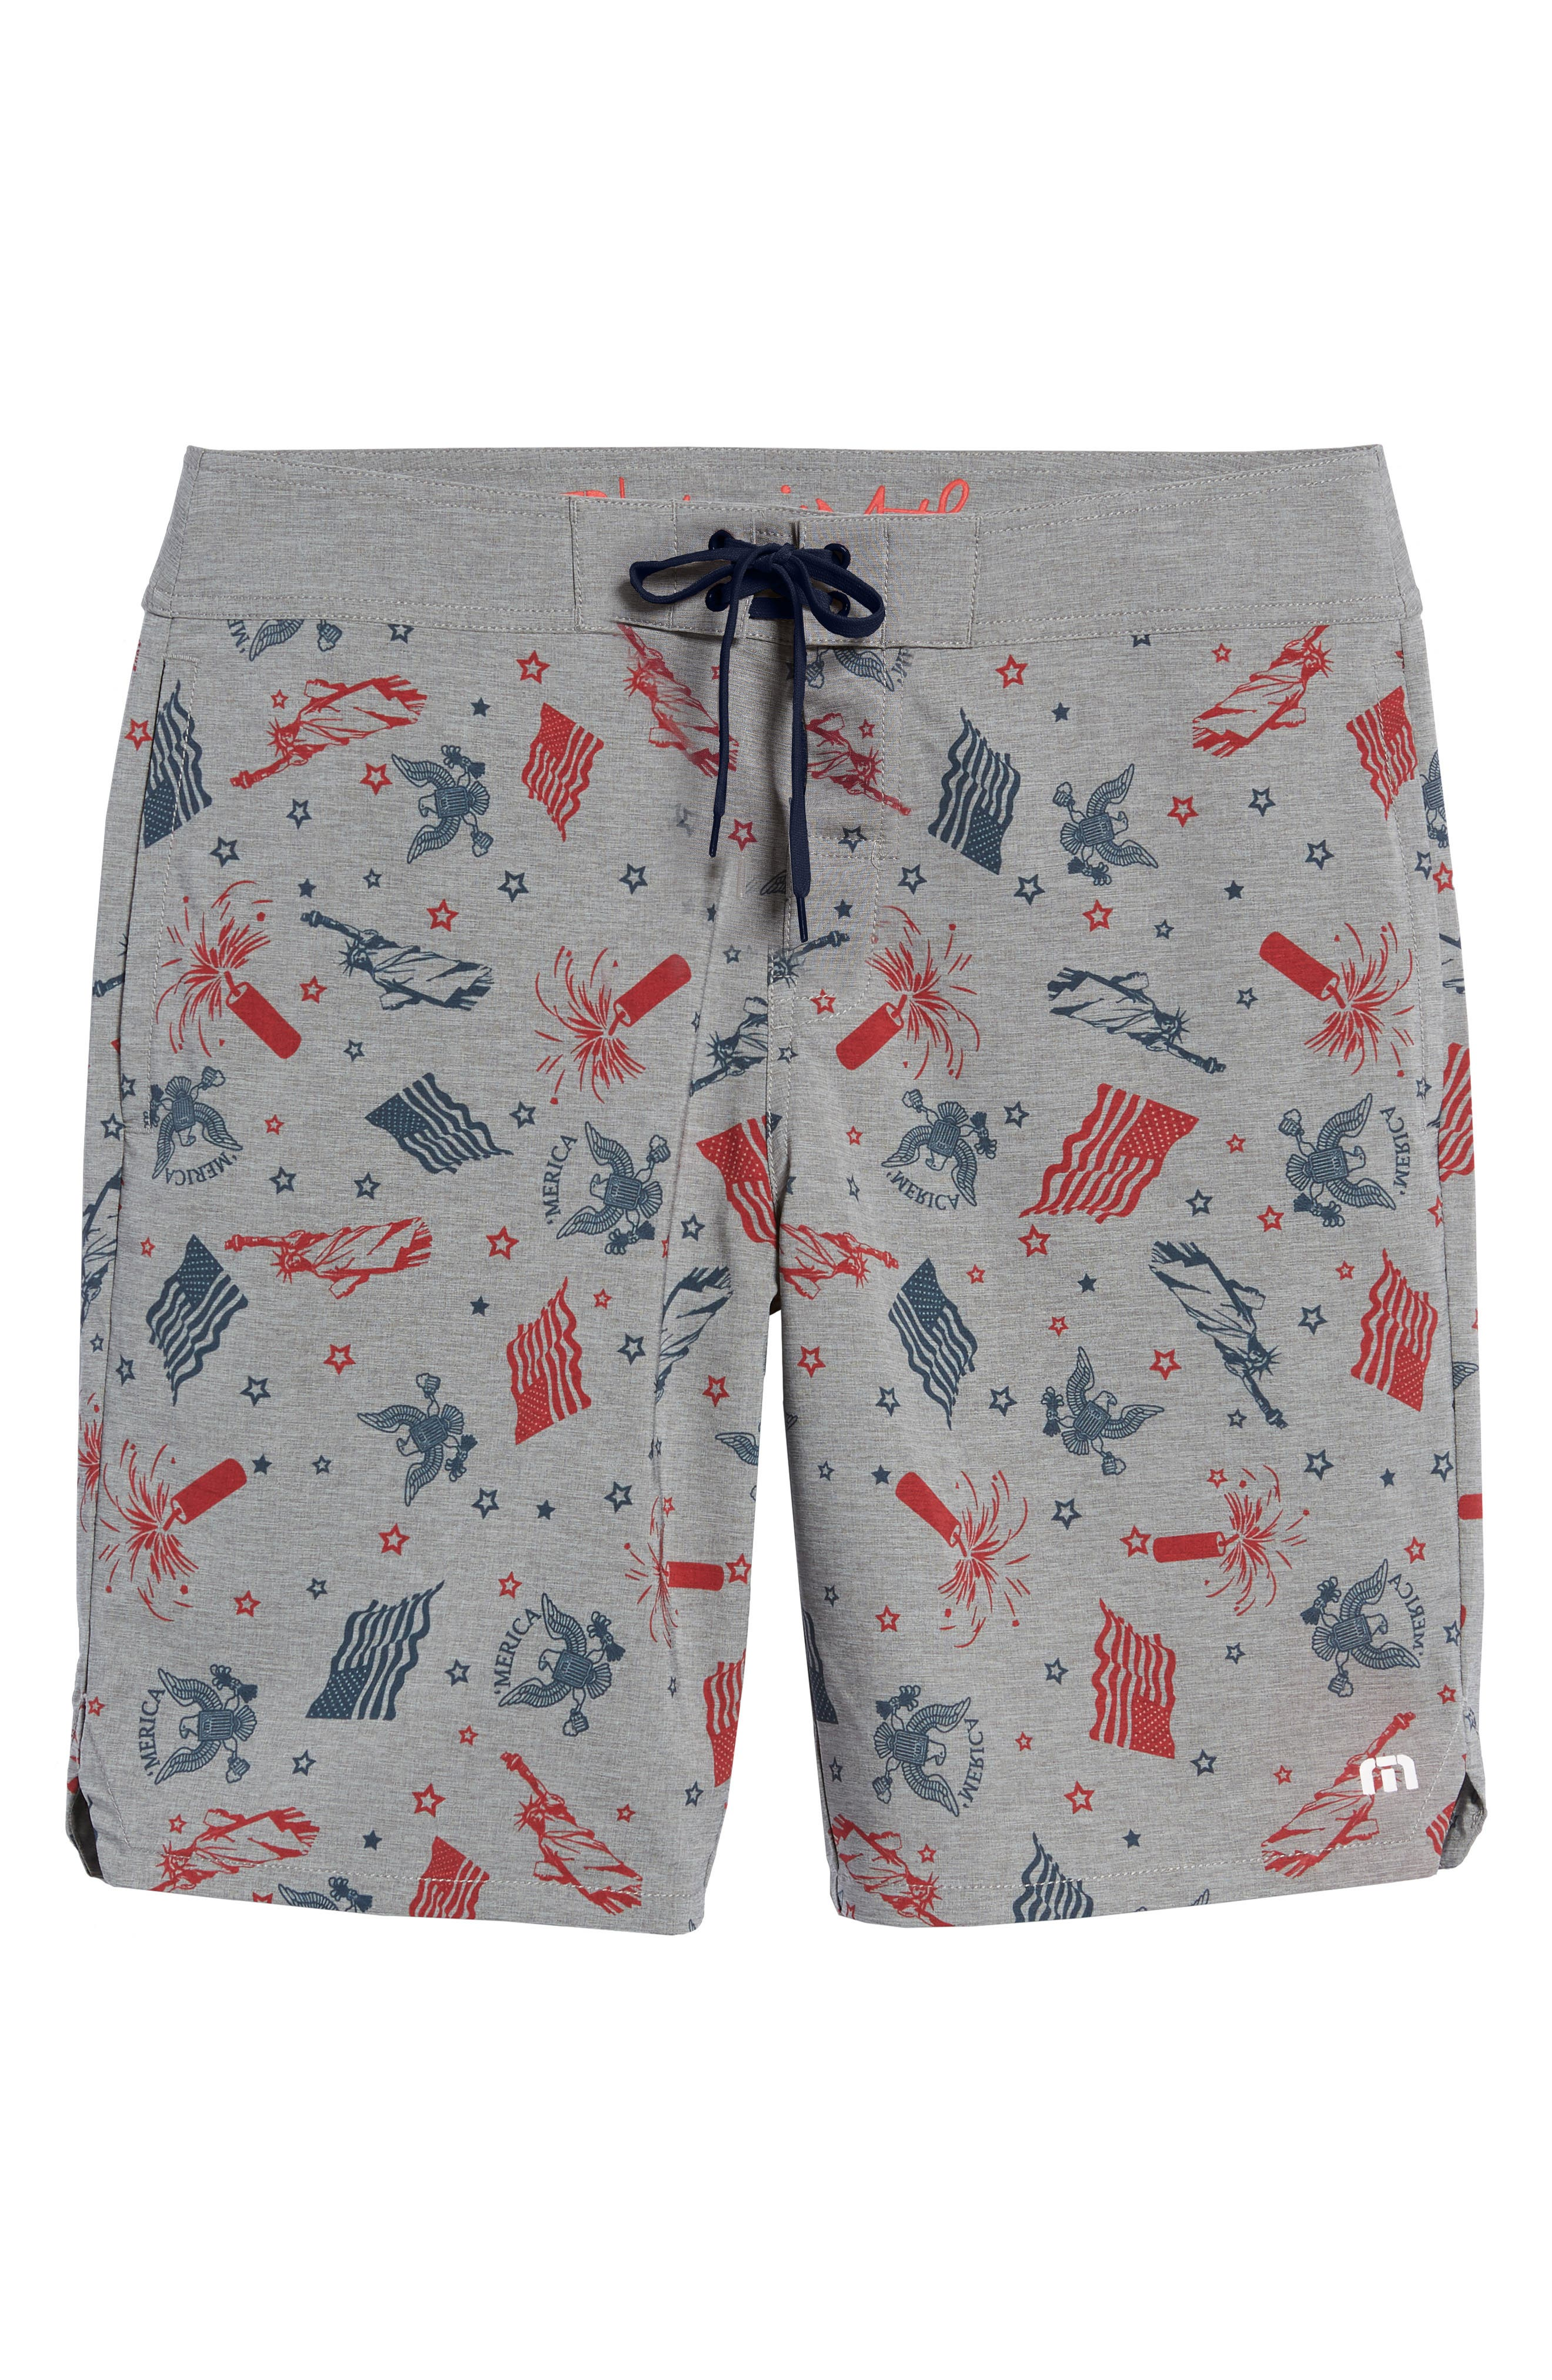 Liberty Swim Trunks,                             Alternate thumbnail 6, color,                             HEATHER GRIFFIN